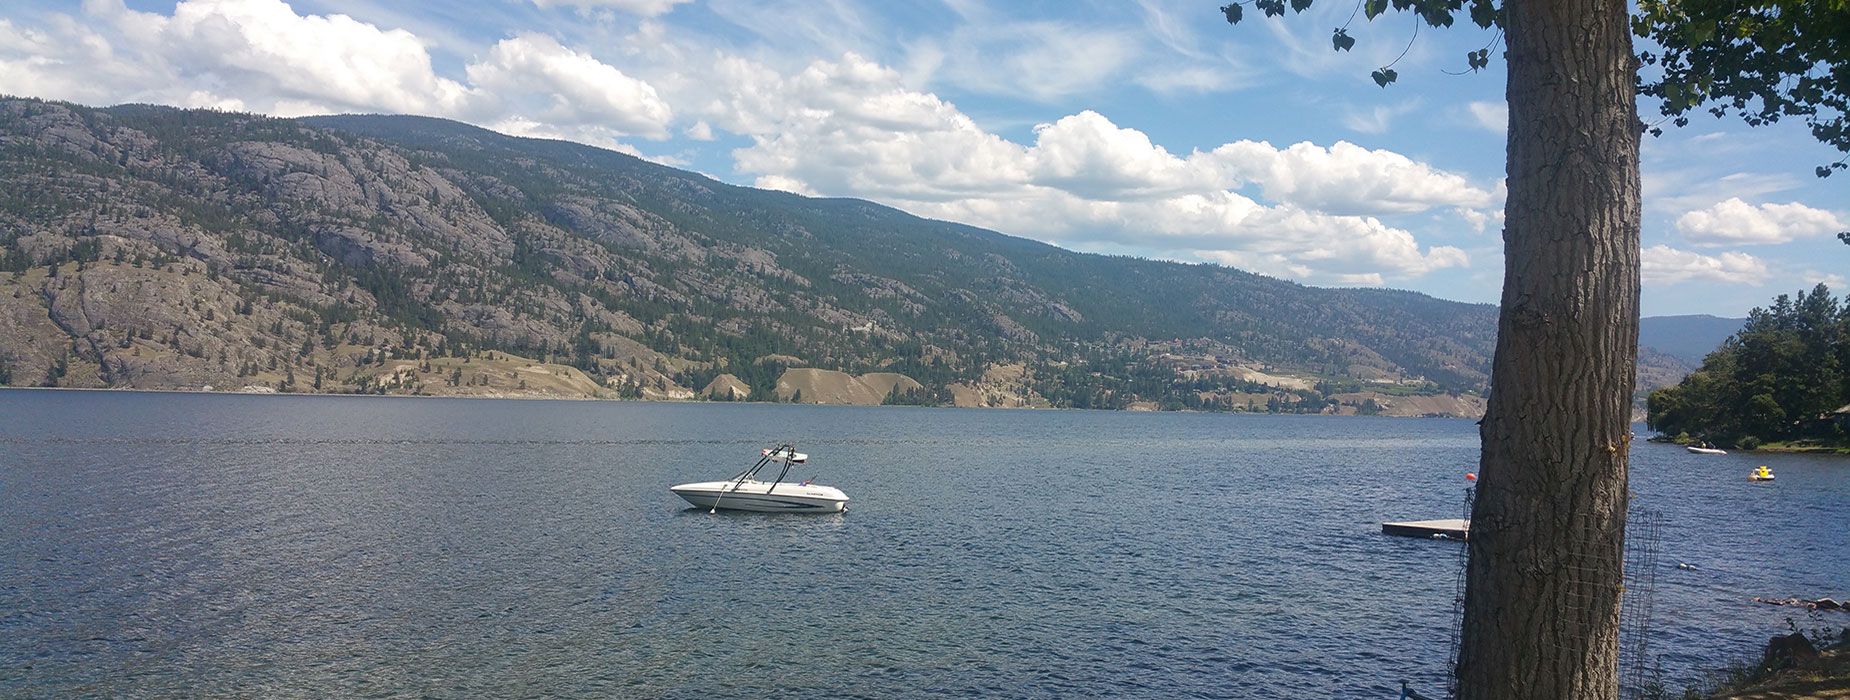 EasyGo Holidays offers a fabulous alternative to hotel stays during your visit to the Okanagan Valley of British Columbia.